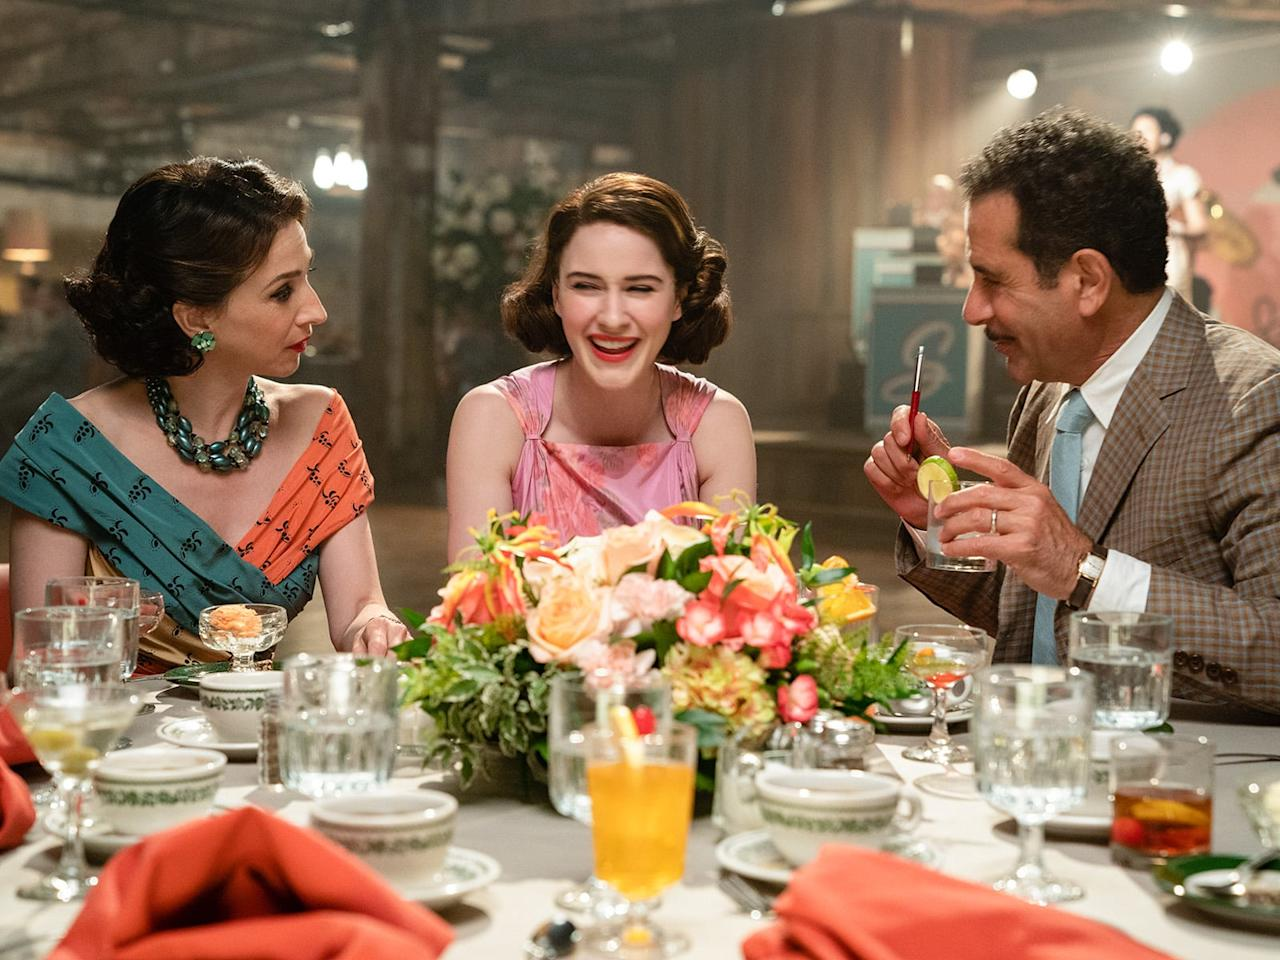 "<p>Tony Shalhoub (who plays Abe Weissman) told <strong>Entertainment Tonight</strong> that <a href=""http://www.etonline.com/the-marvelous-mrs-maisel-is-heading-to-miami-in-season-3-exclusive-119863"" target=""_blank"" class=""ga-track"" data-ga-category=""Related"" data-ga-label=""http://www.etonline.com/the-marvelous-mrs-maisel-is-heading-to-miami-in-season-3-exclusive-119863"" data-ga-action=""In-Line Links"">the show would be heading to Miami in the upcoming season</a>. ""I don't know what that [entails],"" he explained. ""It's about [Midge's] tour, but that's all I got."" This was confirmed in <a href=""https://www.popsugar.com/entertainment/Marvelous-Mrs-Maisel-Season-3-Trailer-46515022"" class=""ga-track"" data-ga-category=""Related"" data-ga-label=""https://www.popsugar.com/entertainment/Marvelous-Mrs-Maisel-Season-3-Trailer-46515022"" data-ga-action=""In-Line Links"">the season three trailer</a>, which sees Midge and co. jetting off to Florida as well as shots of her hamming it up around the country on tour!</p>"